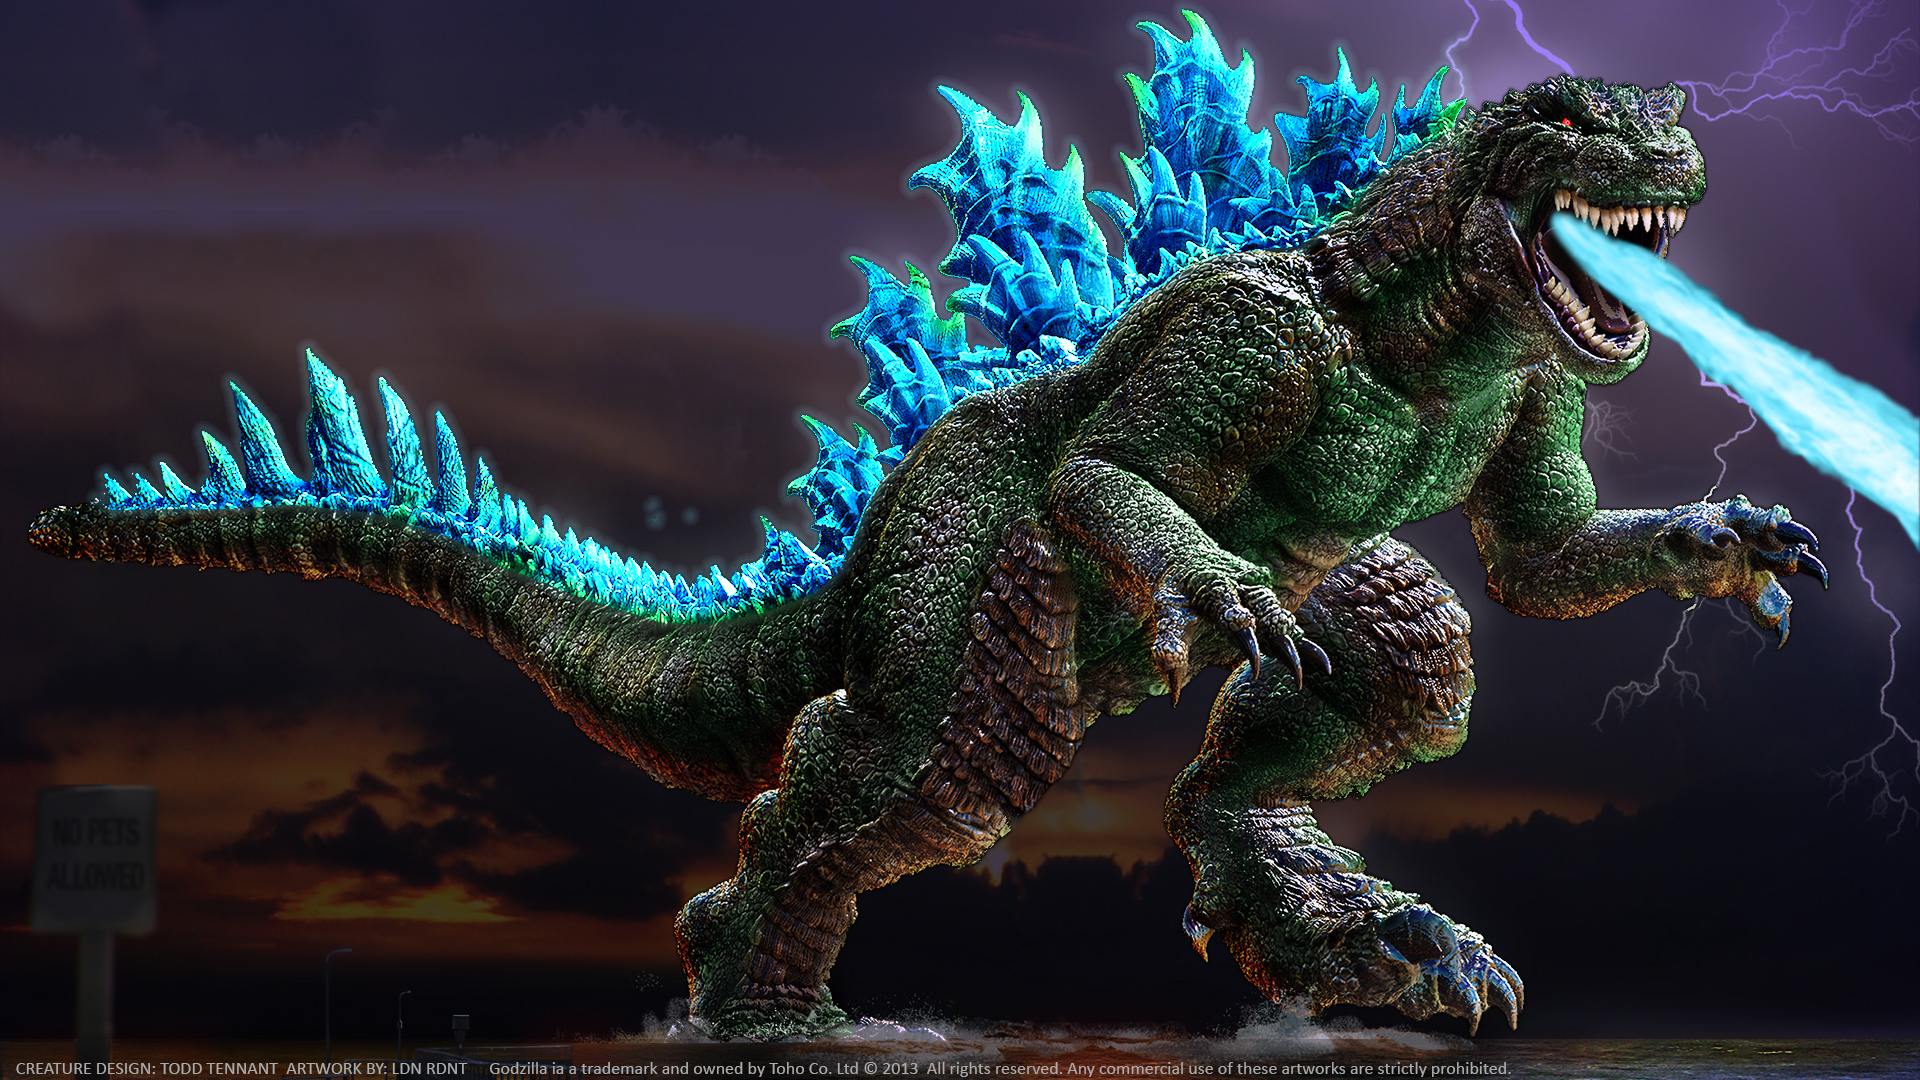 Godzilla Wallpaper 1920x1080 Images amp Pictures   Becuo 1920x1080